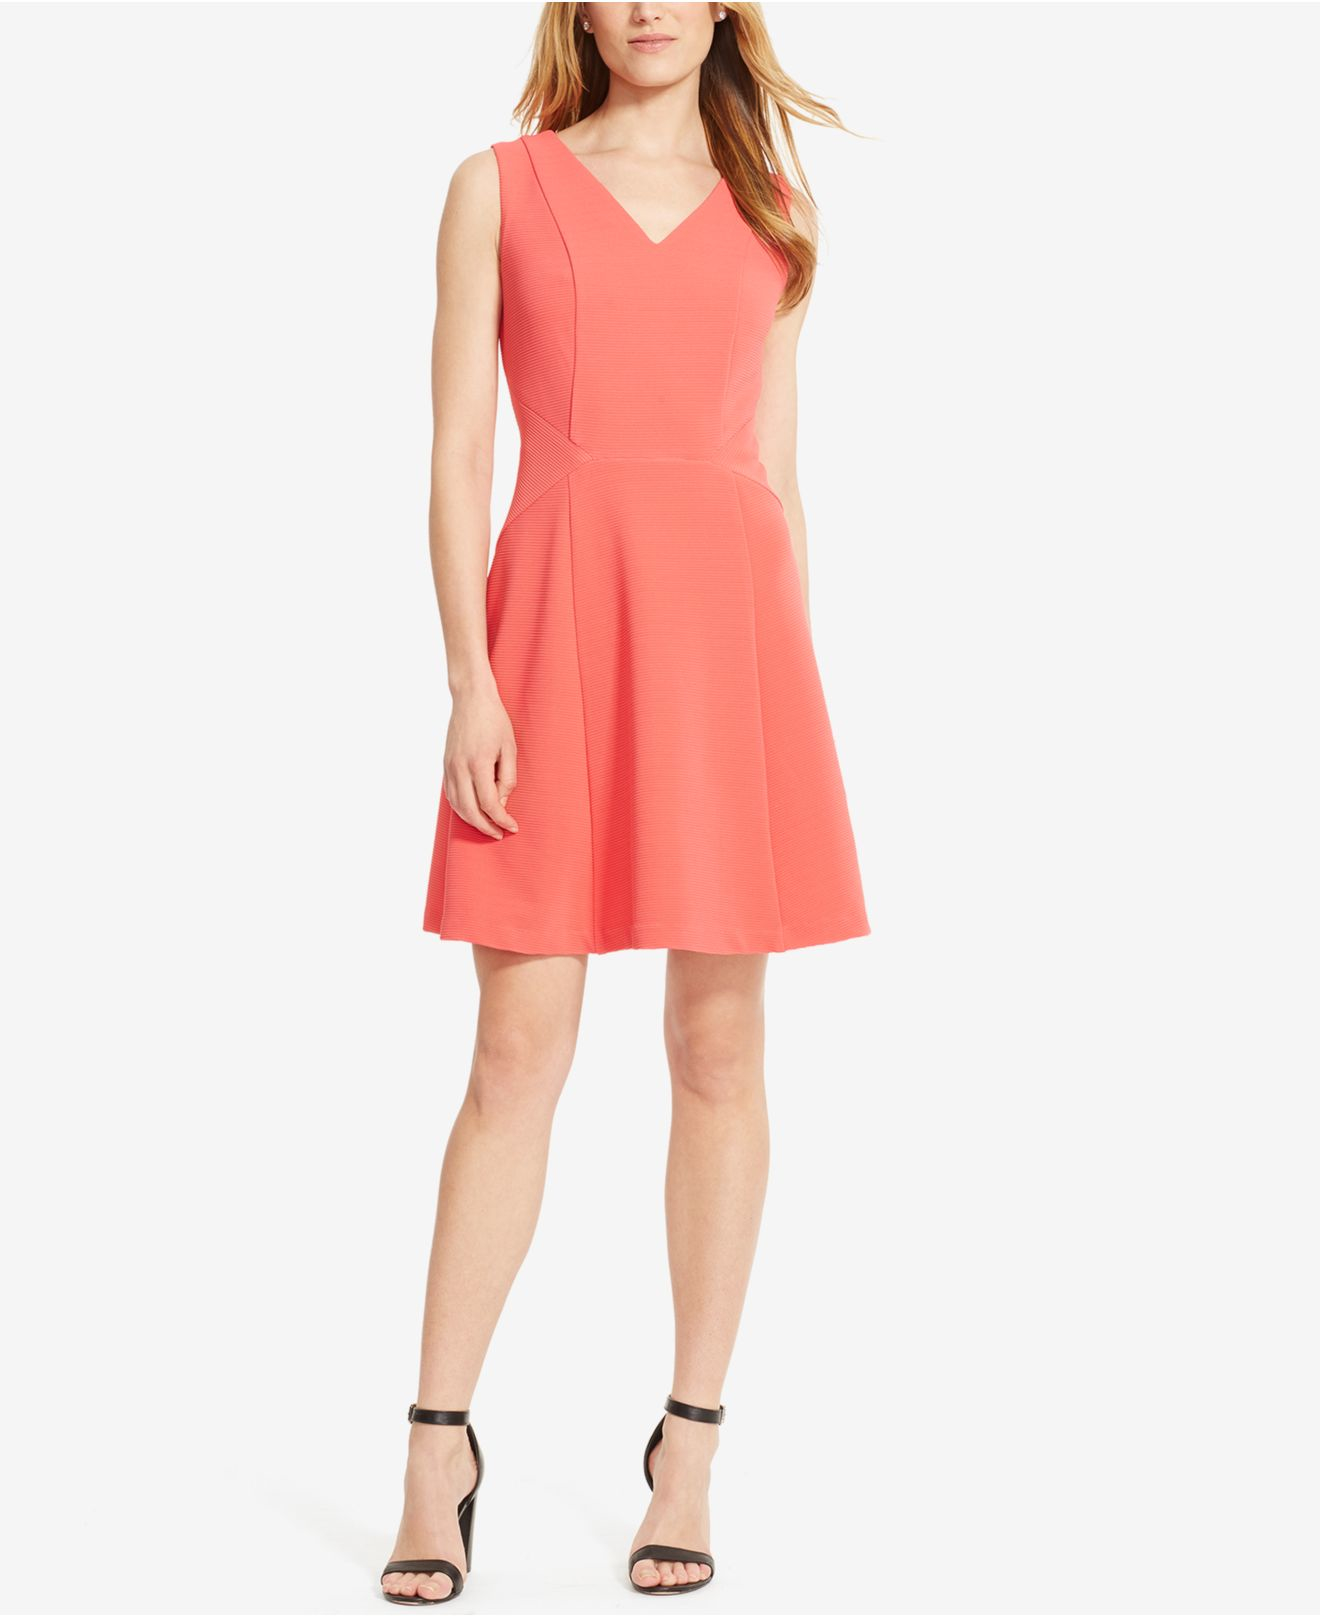 American Living Sleeveless Rib Knit Dress In Pink Lyst